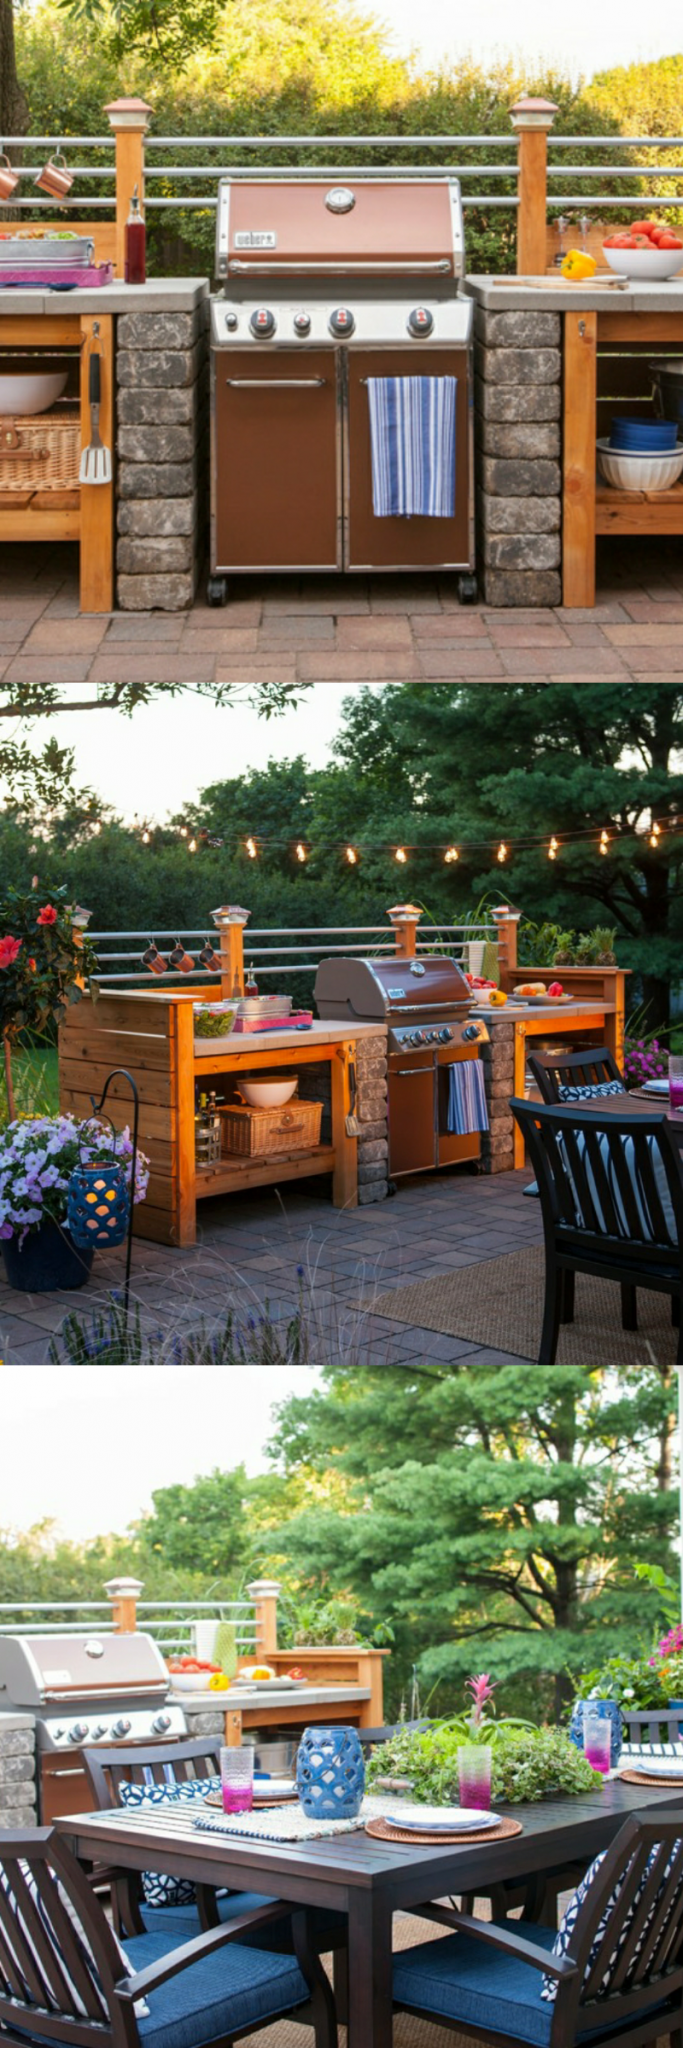 outdoor kitchen ideas on a budget affordable small and diy outdoor kitchen ideas afford on outdoor kitchen easy id=15807